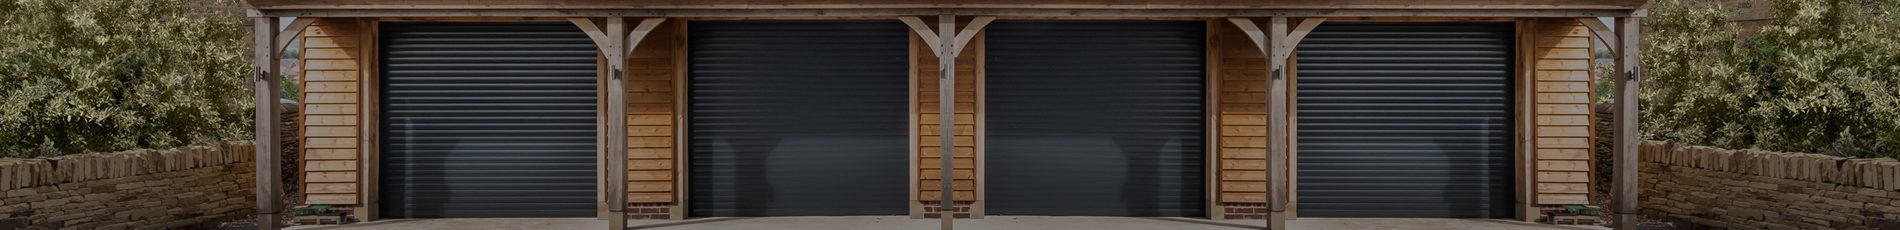 Roller Garage Doors Harrow